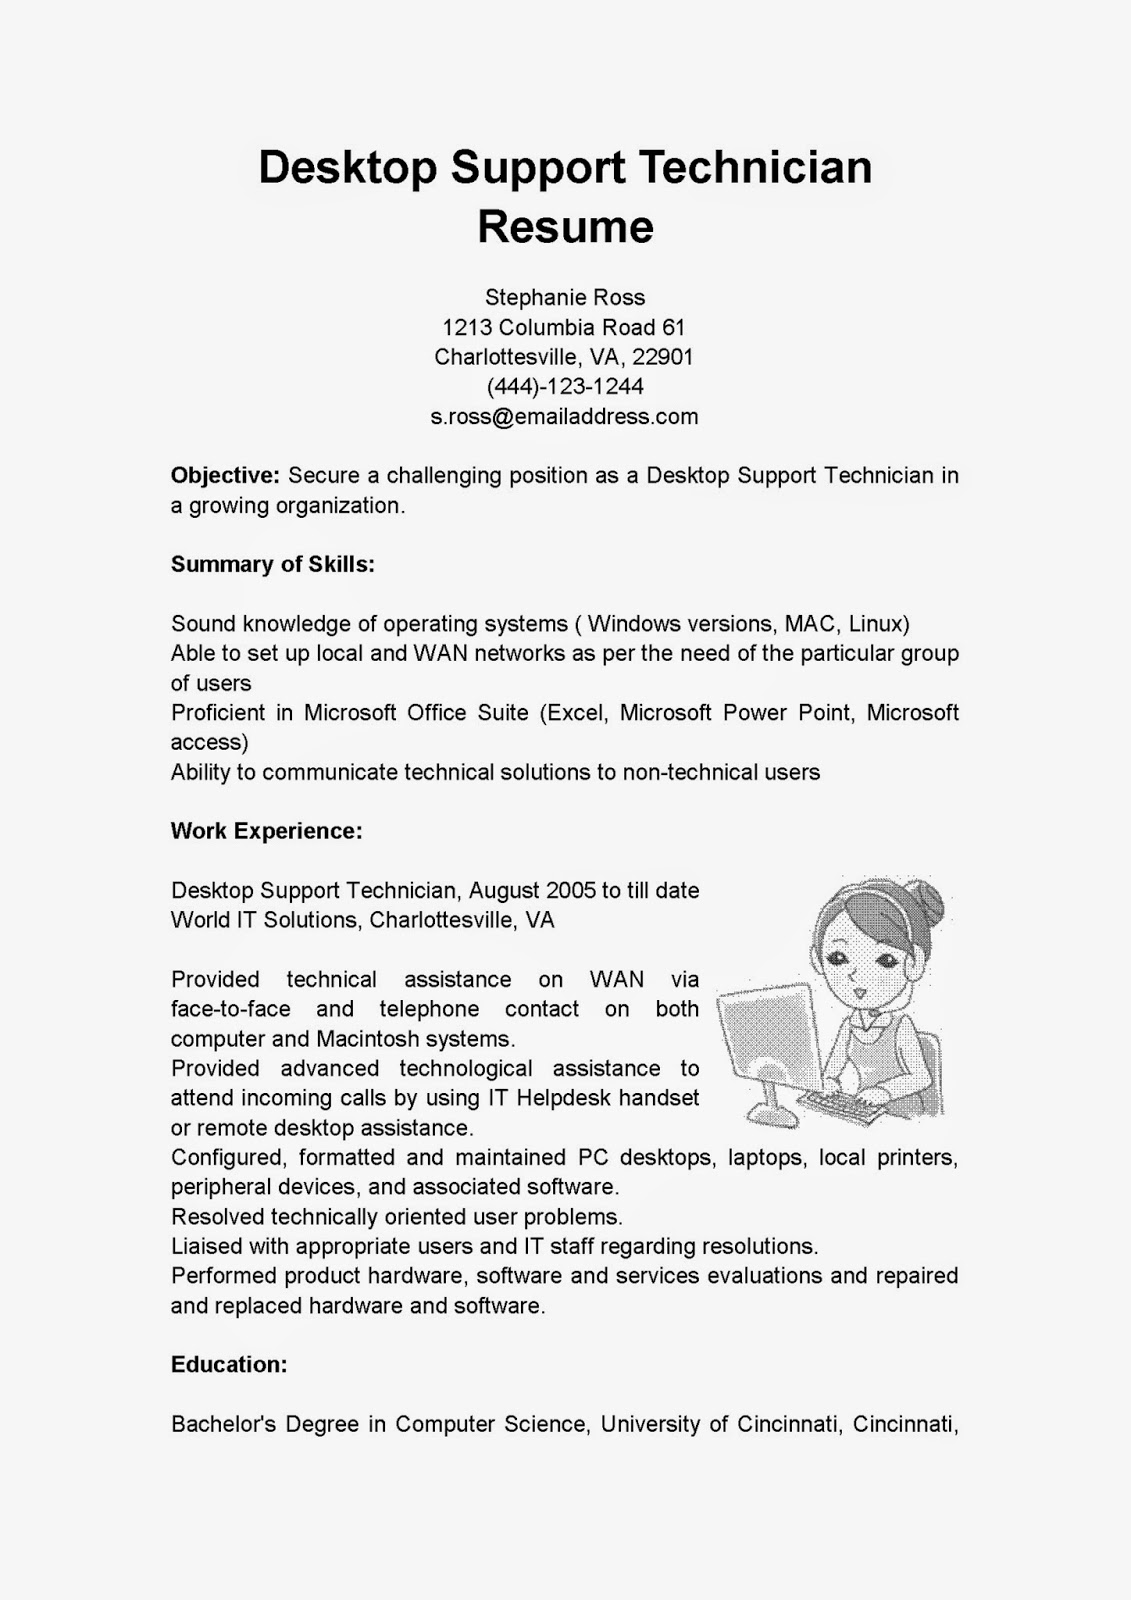 Resume samples desktop support technician resume sample for Sample cover letter for computer technician job